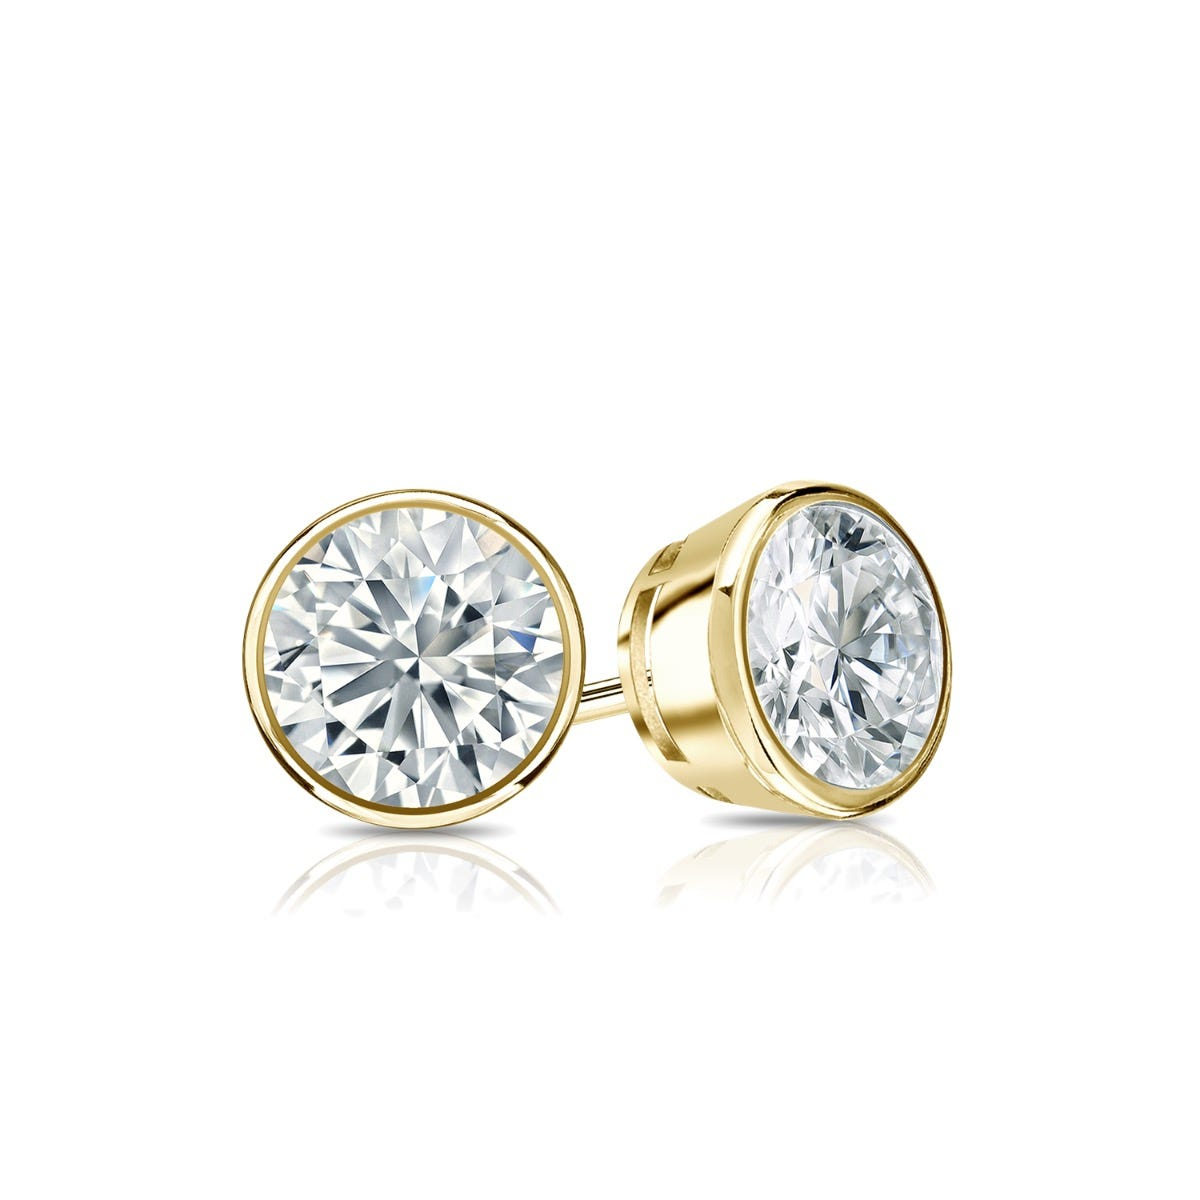 Diamond Round Bezel-Set 5/8ctw. Solitaire Stud (IJ-I2) Earrings in 10K Yellow Gold